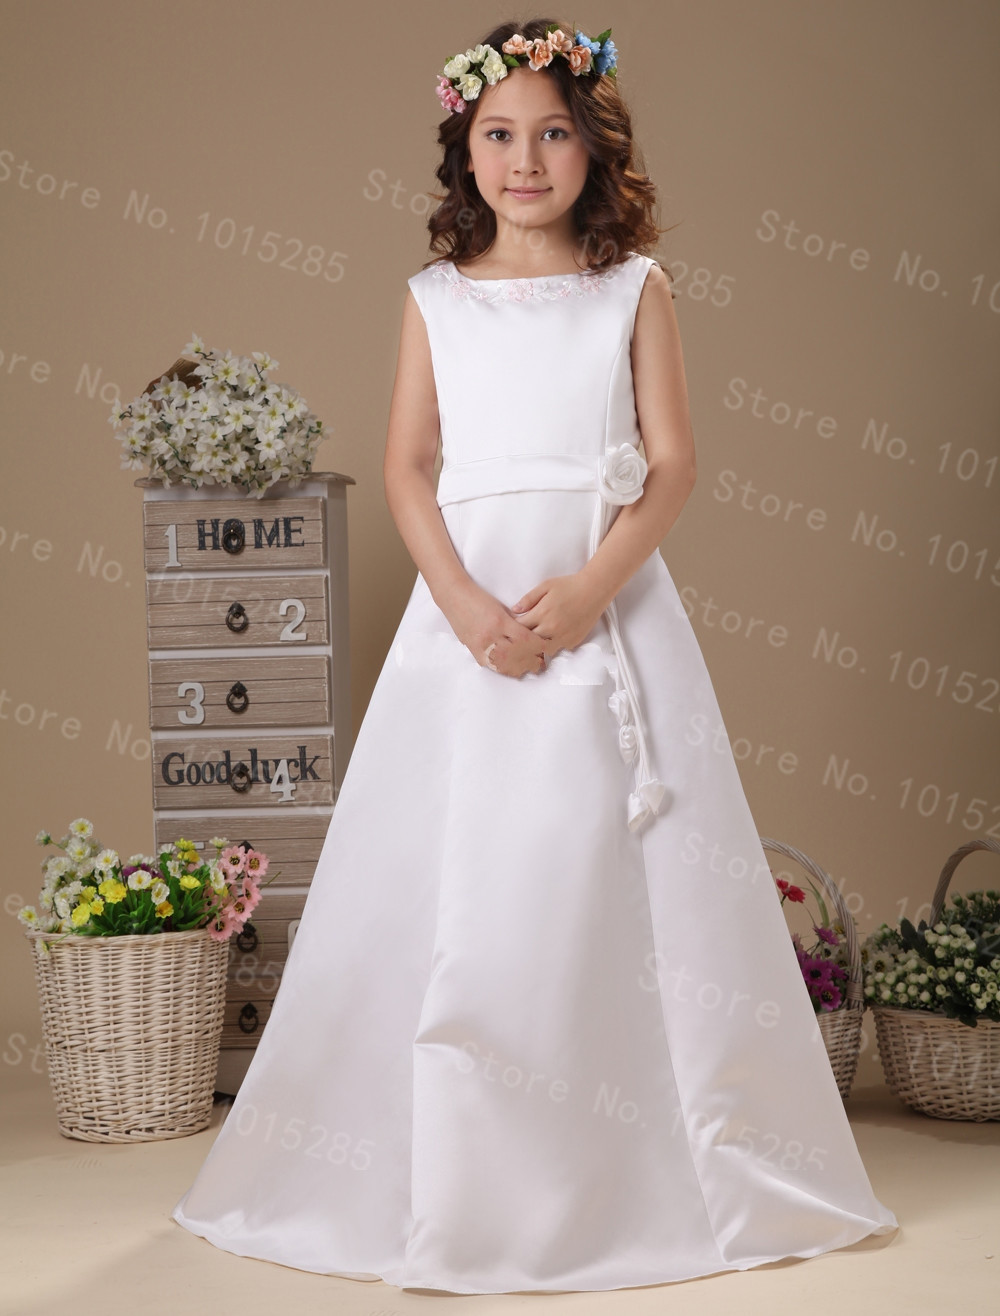 dresses for little bridesmaid wedding dresses for girls Tailor Made Pick Girls Bridesmaid Dress With Straps